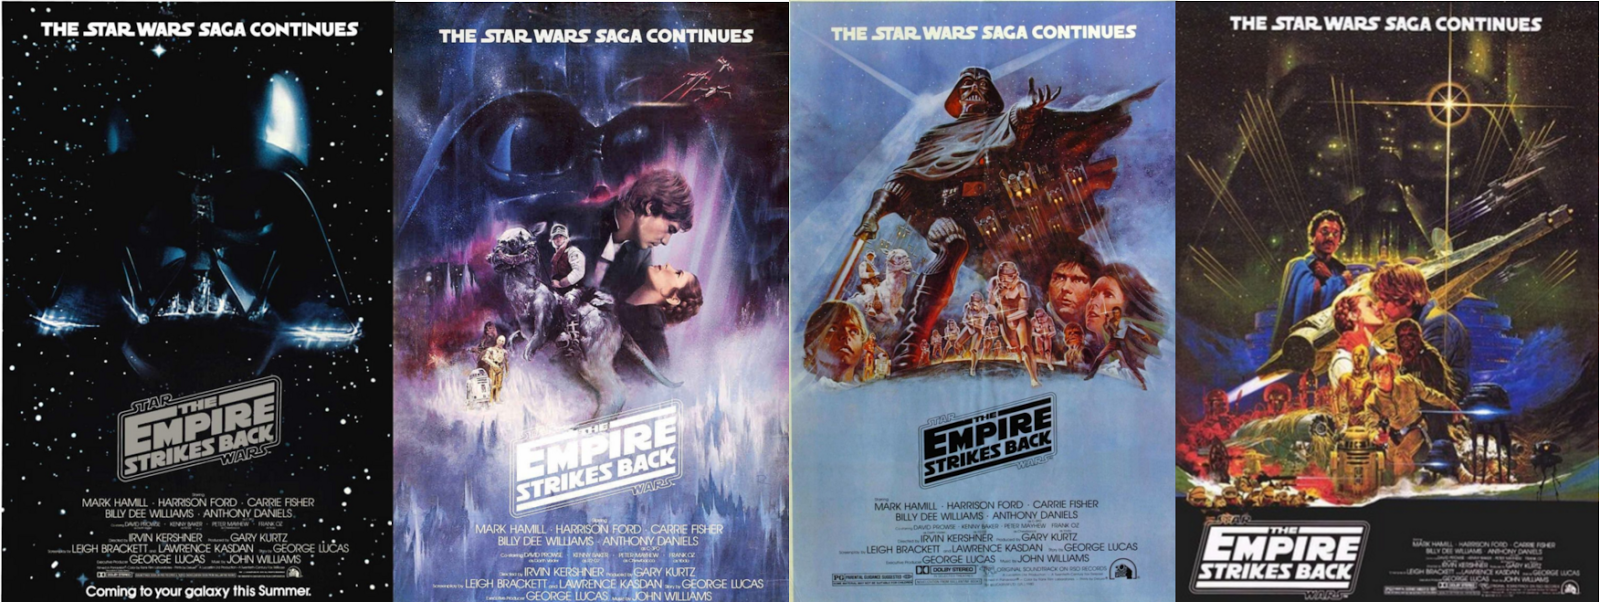 Star Wars 9: The Fan Service Menace - Página 18 Empire-strikes-back-posters-yung